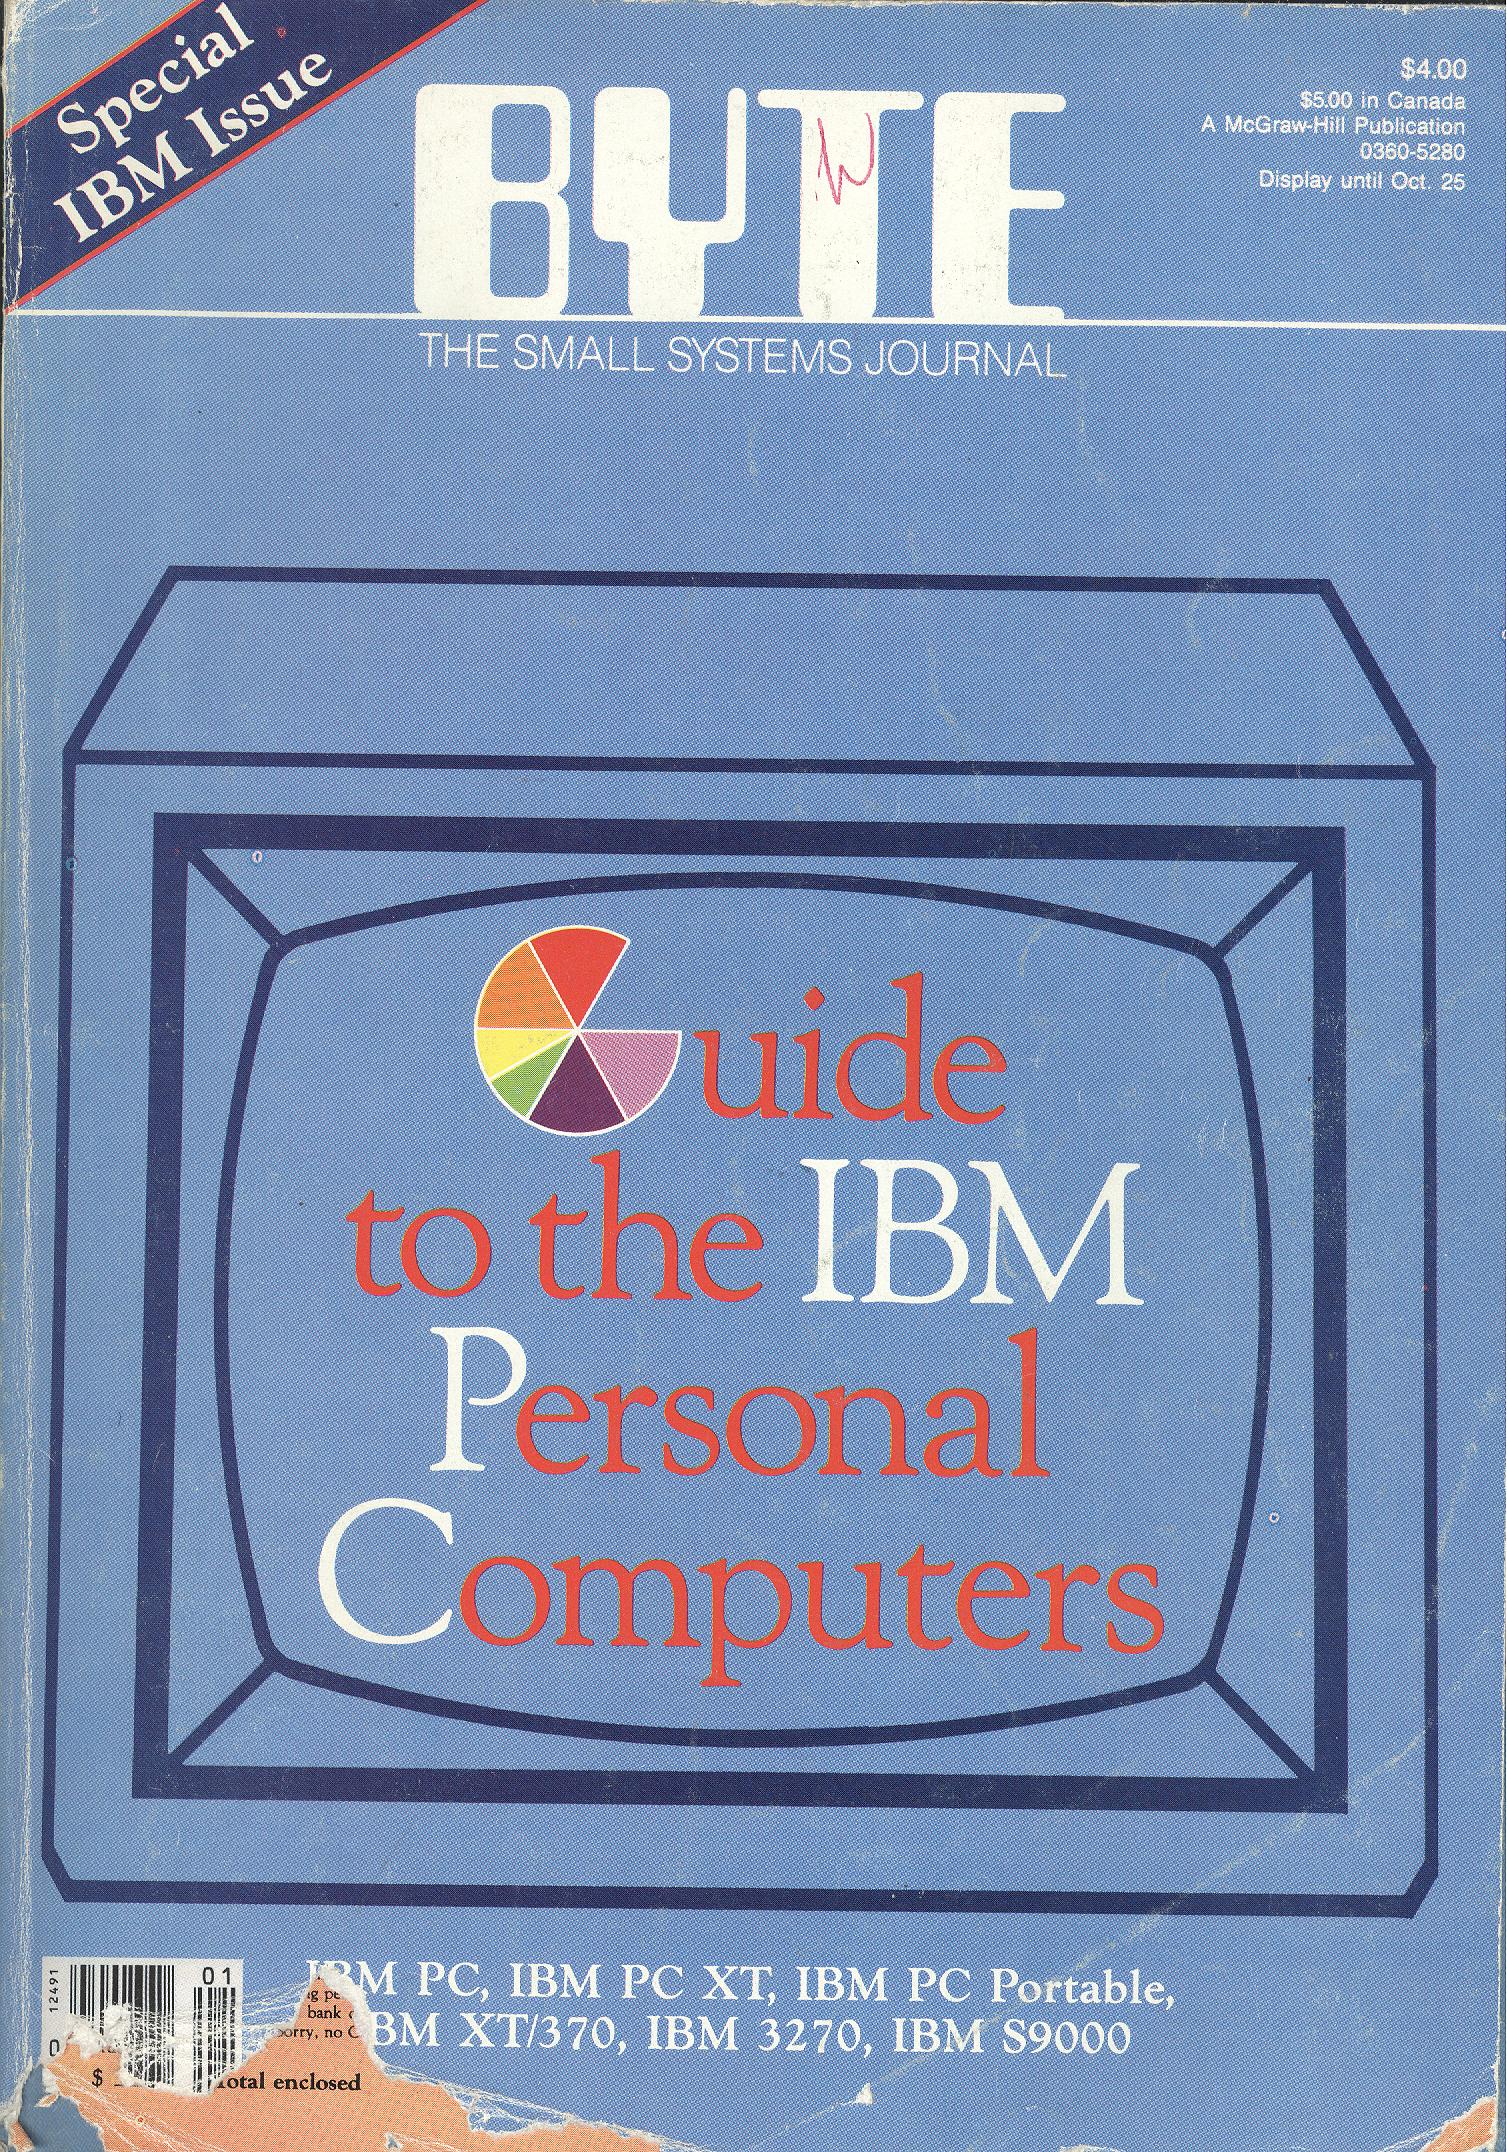 Guide to the IBM Personal Computers